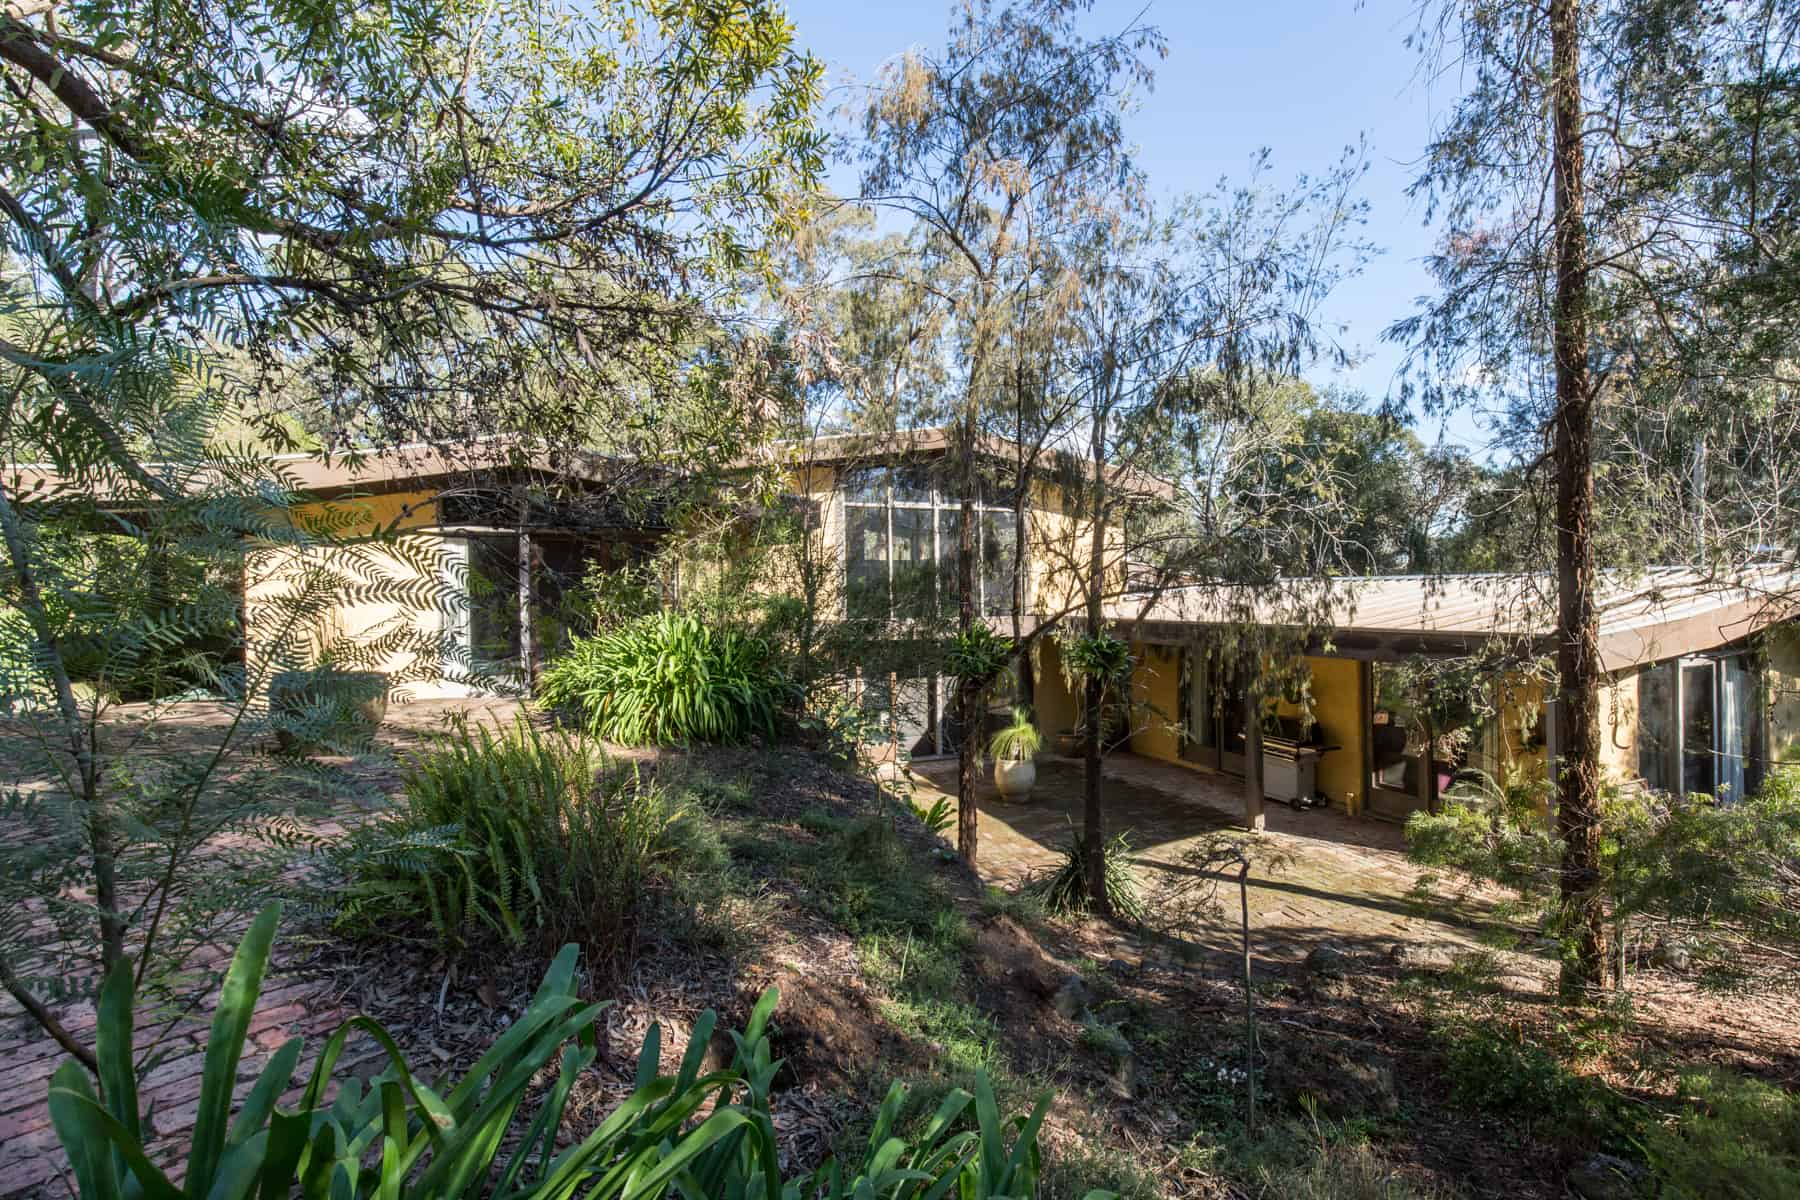 Barden house, 9 Yarra Braes Rd, Eltham. VIC 3095. Mud brick house designed by Alistair Knox. Plan dated February 1969 Job number 499